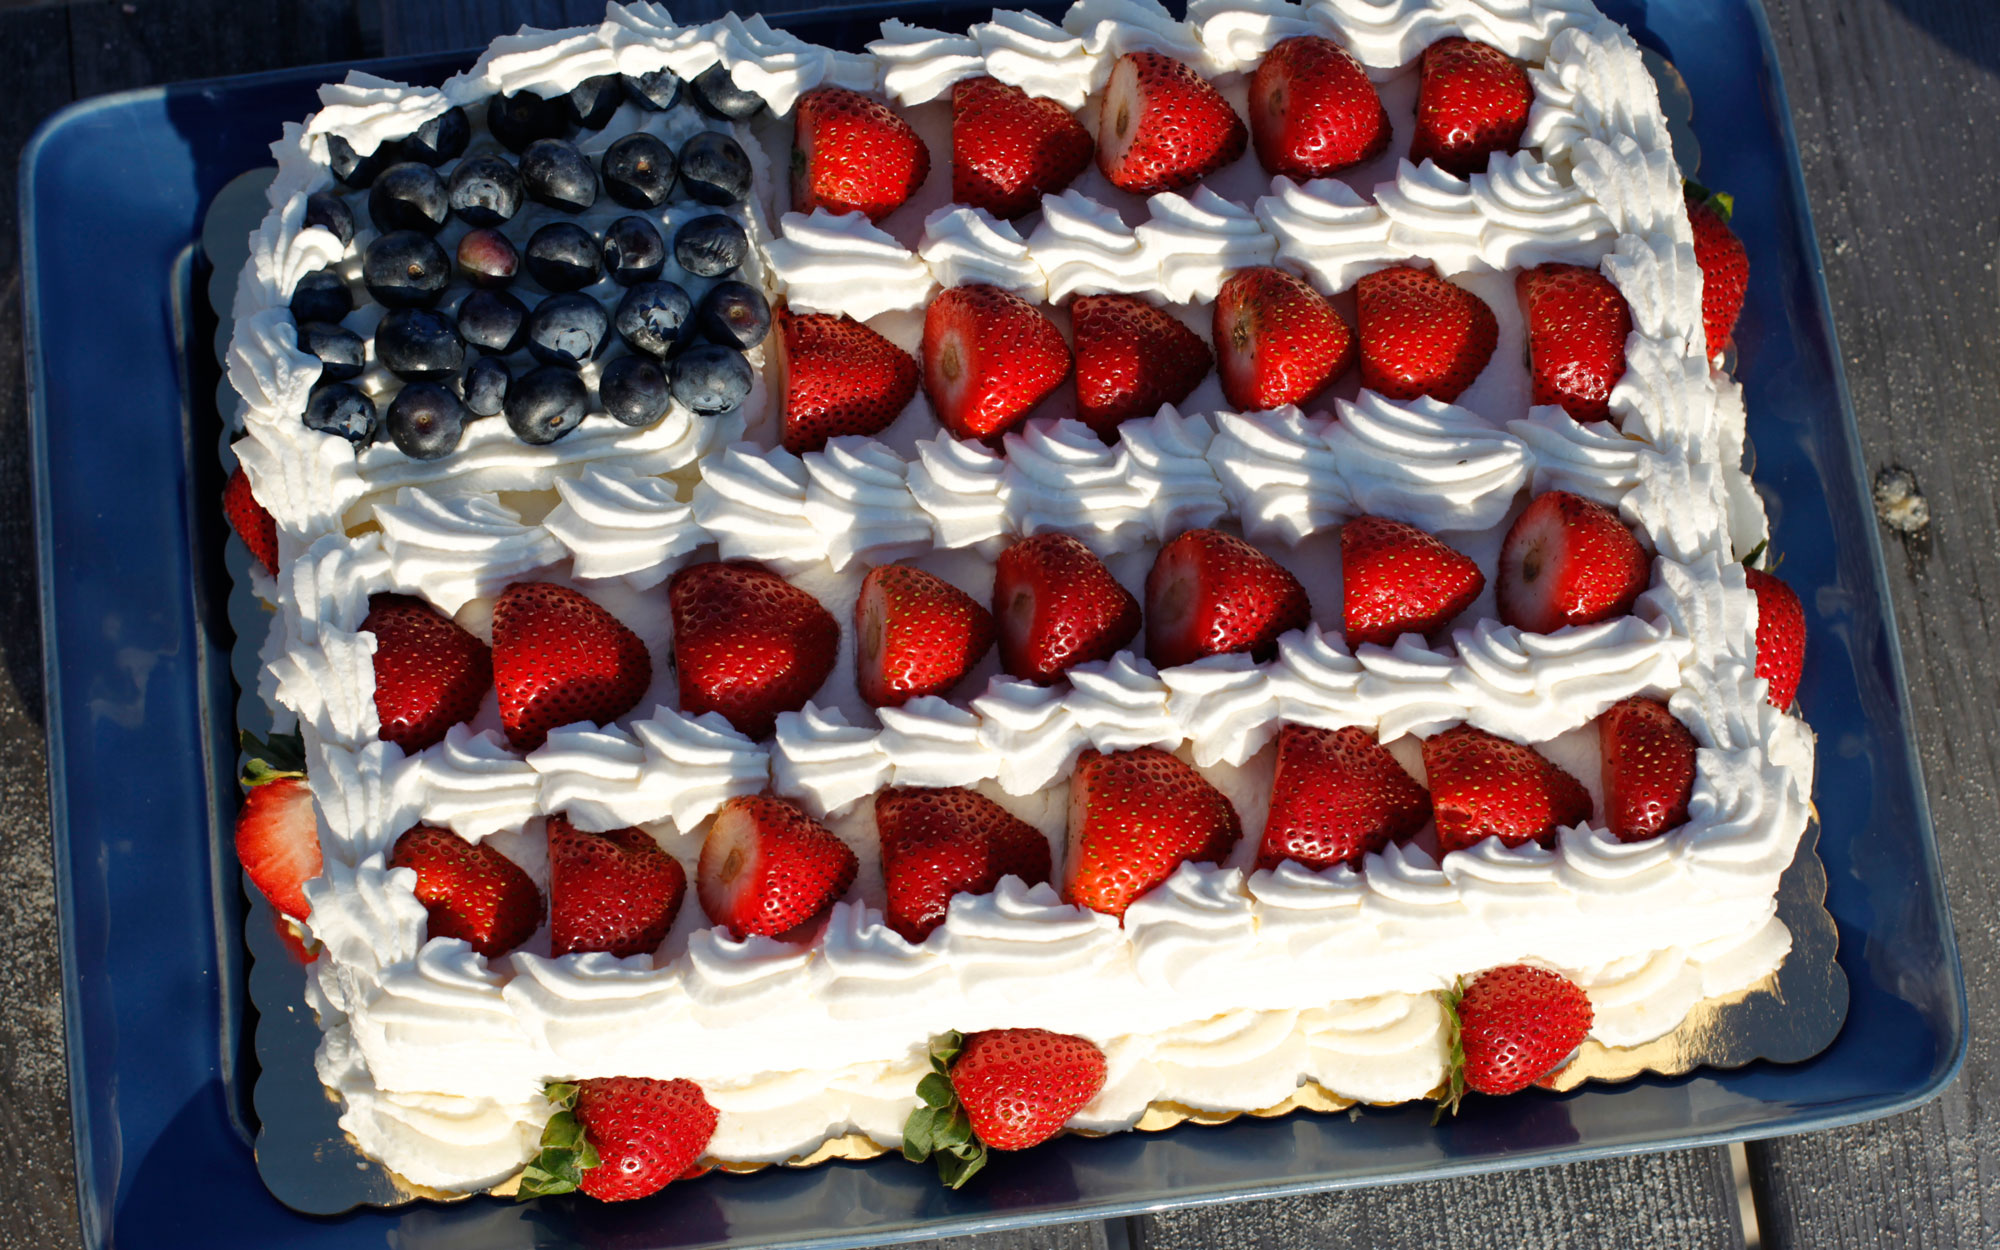 Patriotic 4th of July Photos + Images